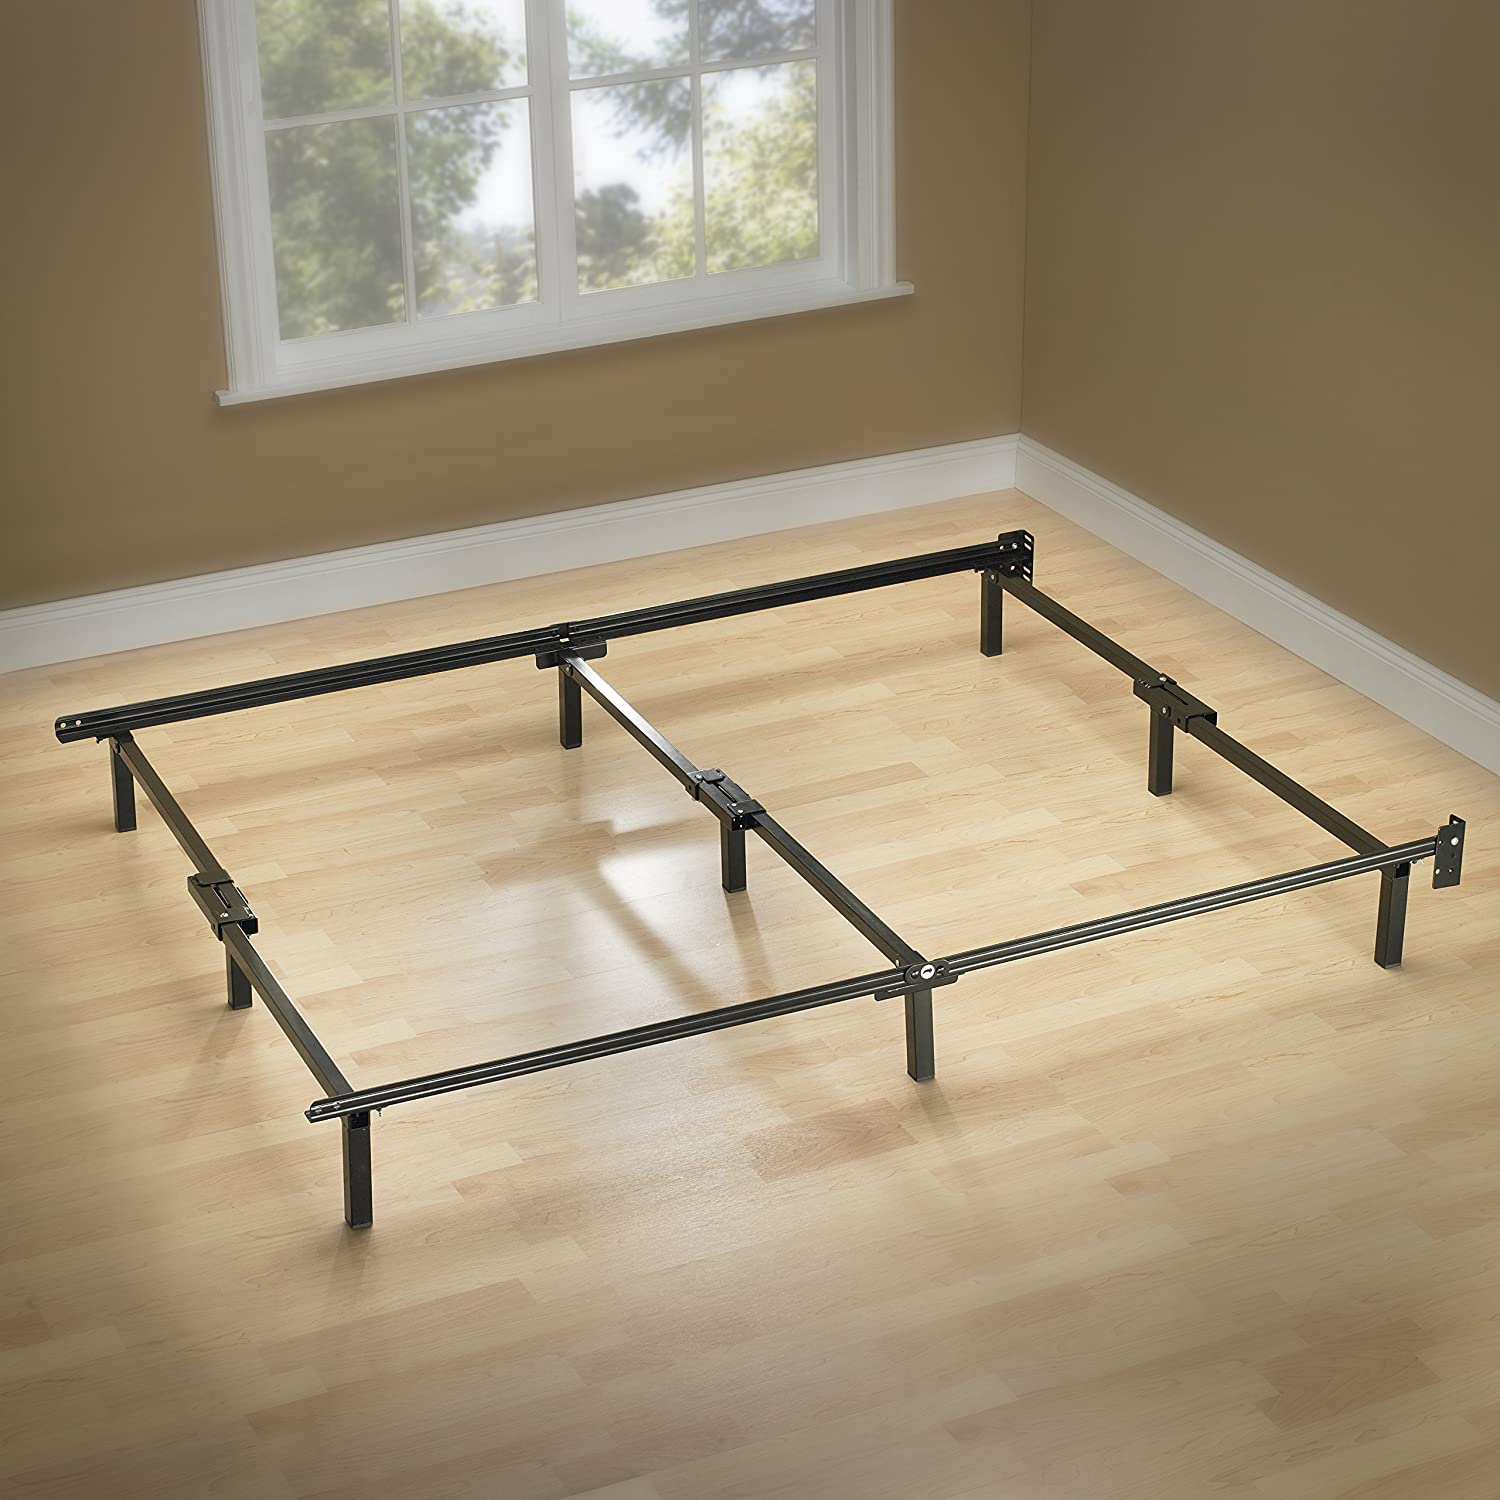 ZINUS 7 Inch Compack Metal Bed Frame $43.52 Coupon